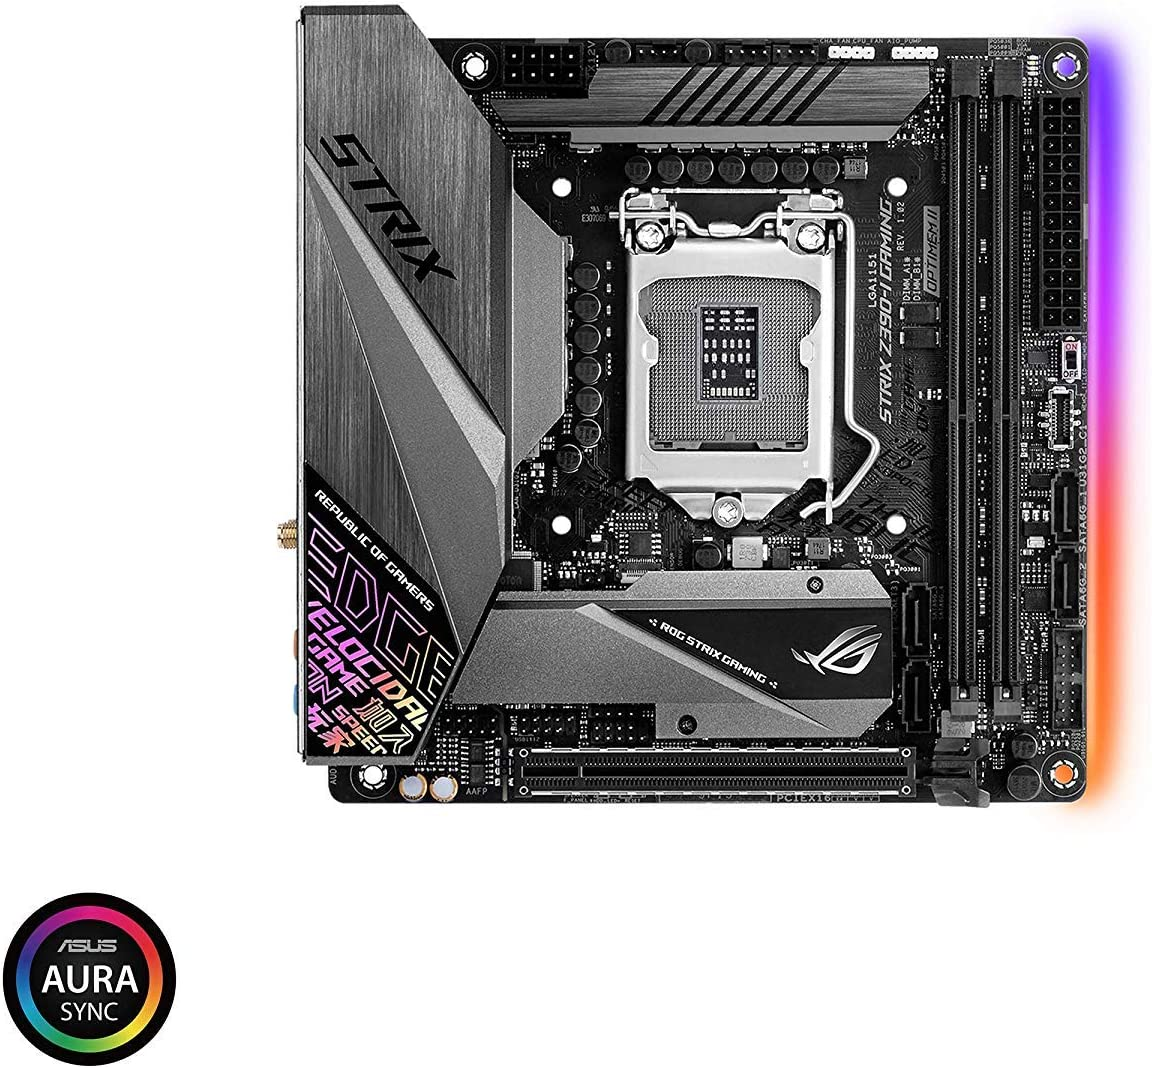 ASUS ROG Strix Z390-I Gaming LGA1151 (Intel 8th and 9th Gen) Mini ITX (MITX) DDR4 DP HDMI M.2 USB 3.1 Gen2 Motherboard